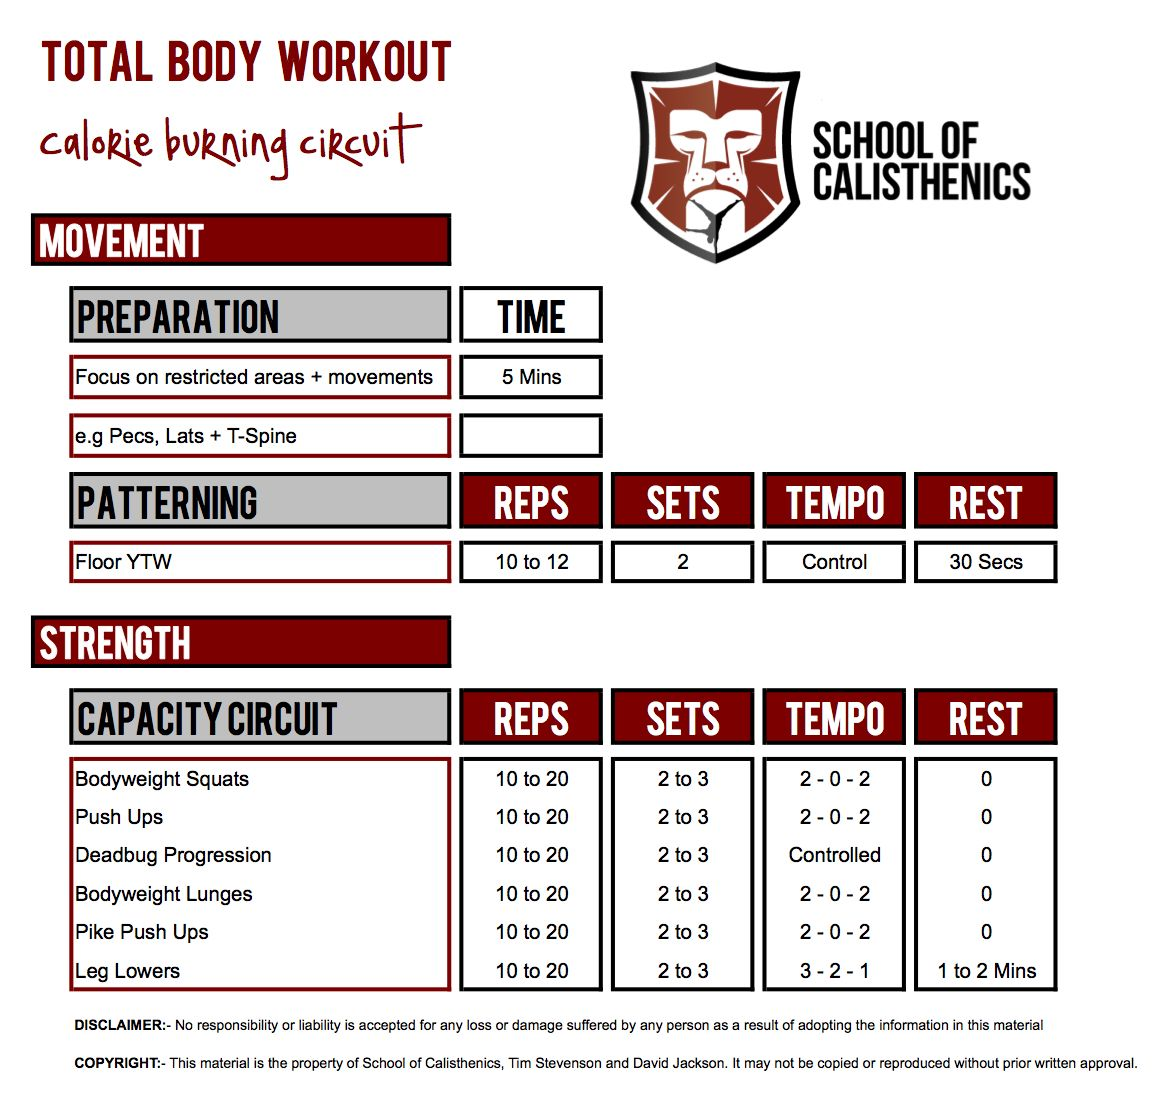 How To Burn More Calories With Calisthenics